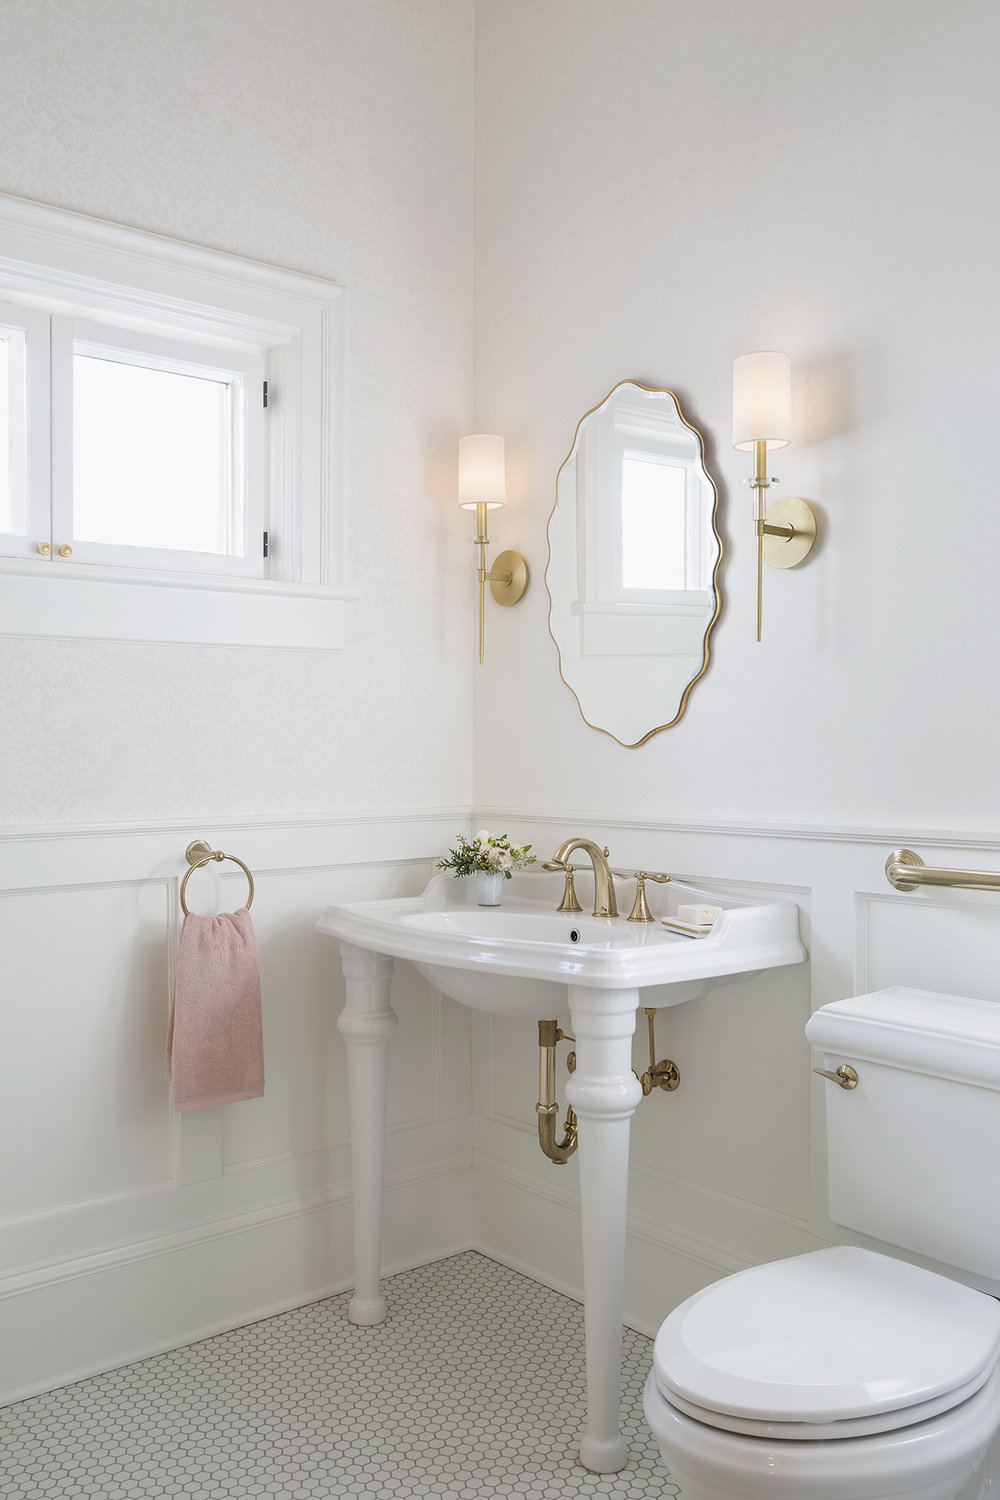 A powder room in a historic Saint Paul home shines with traditional flourishes and a touch of glamor.